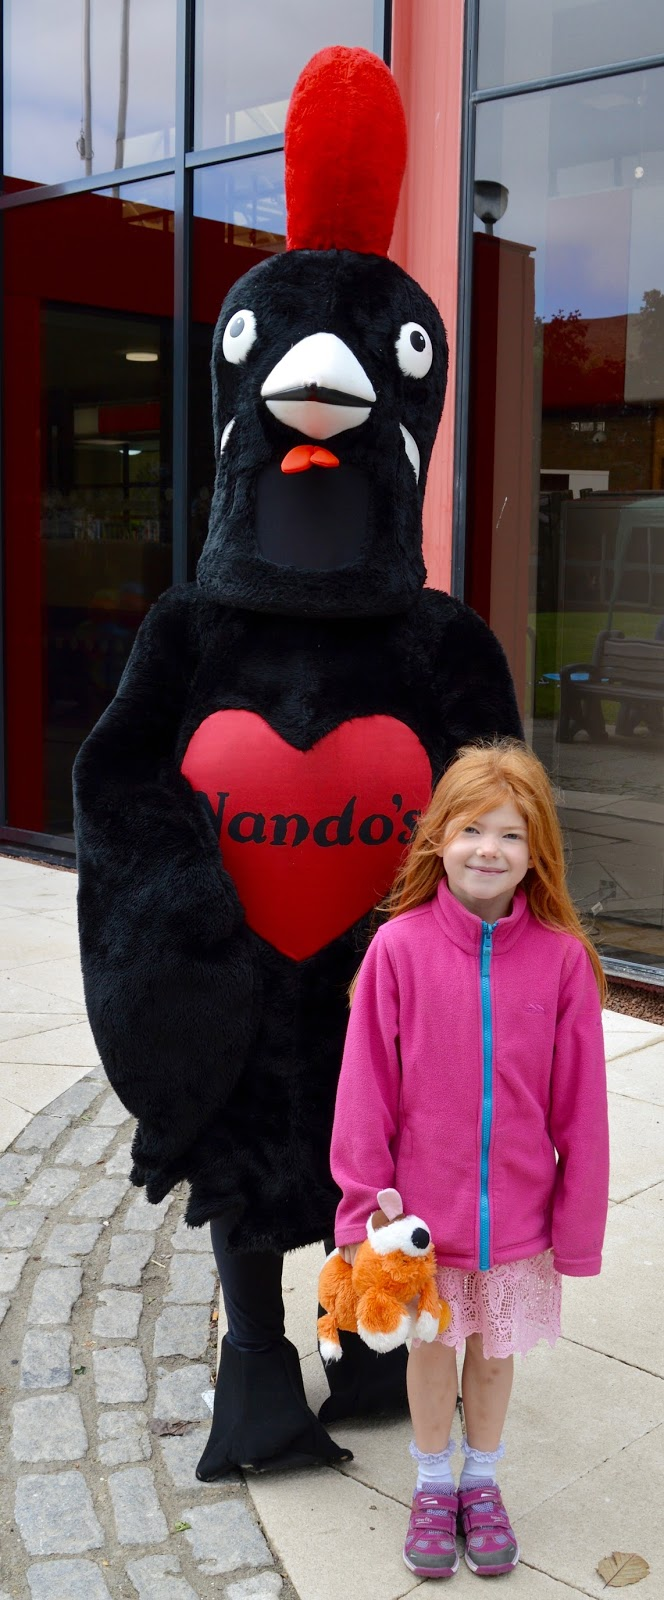 Pirates & Princesses Day at Manor Walks - Nandos chicken